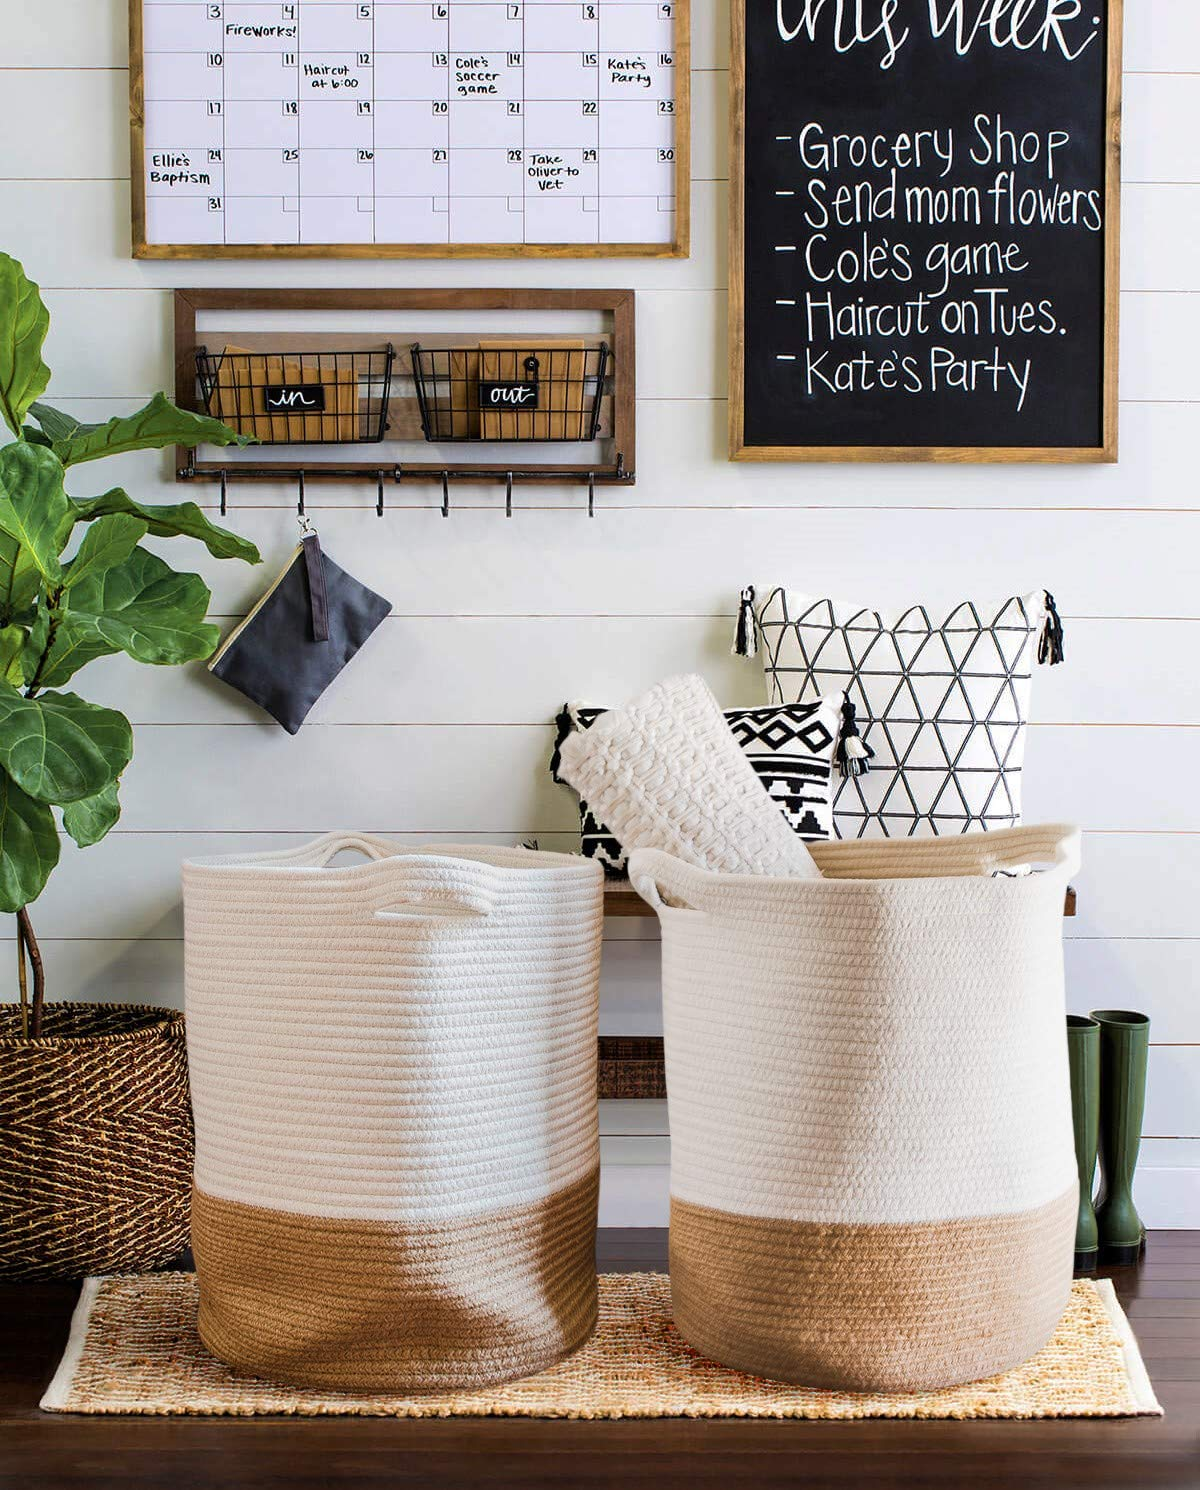 $29.99 - Extra Large Woven Baskets | Again - I use these for everything but these guys tend to love holding my blankets around the house.